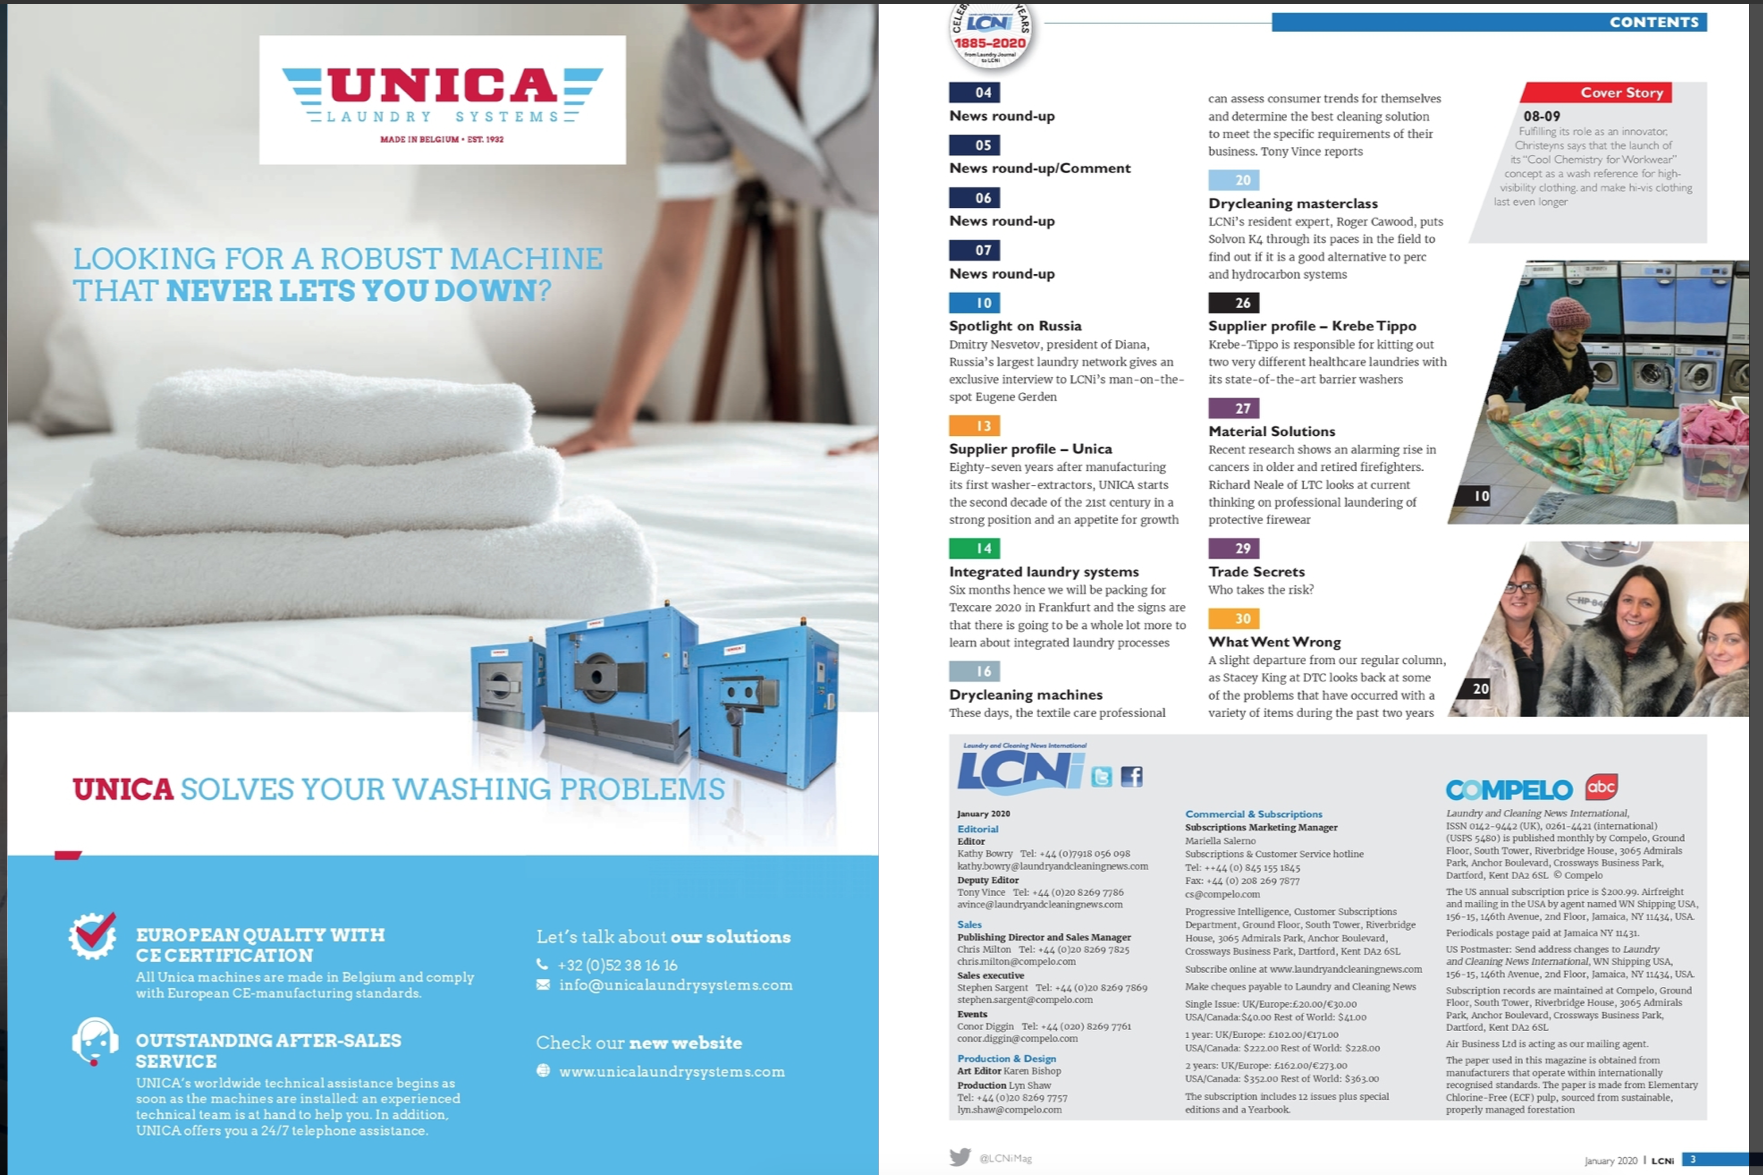 unica solves your washing problems